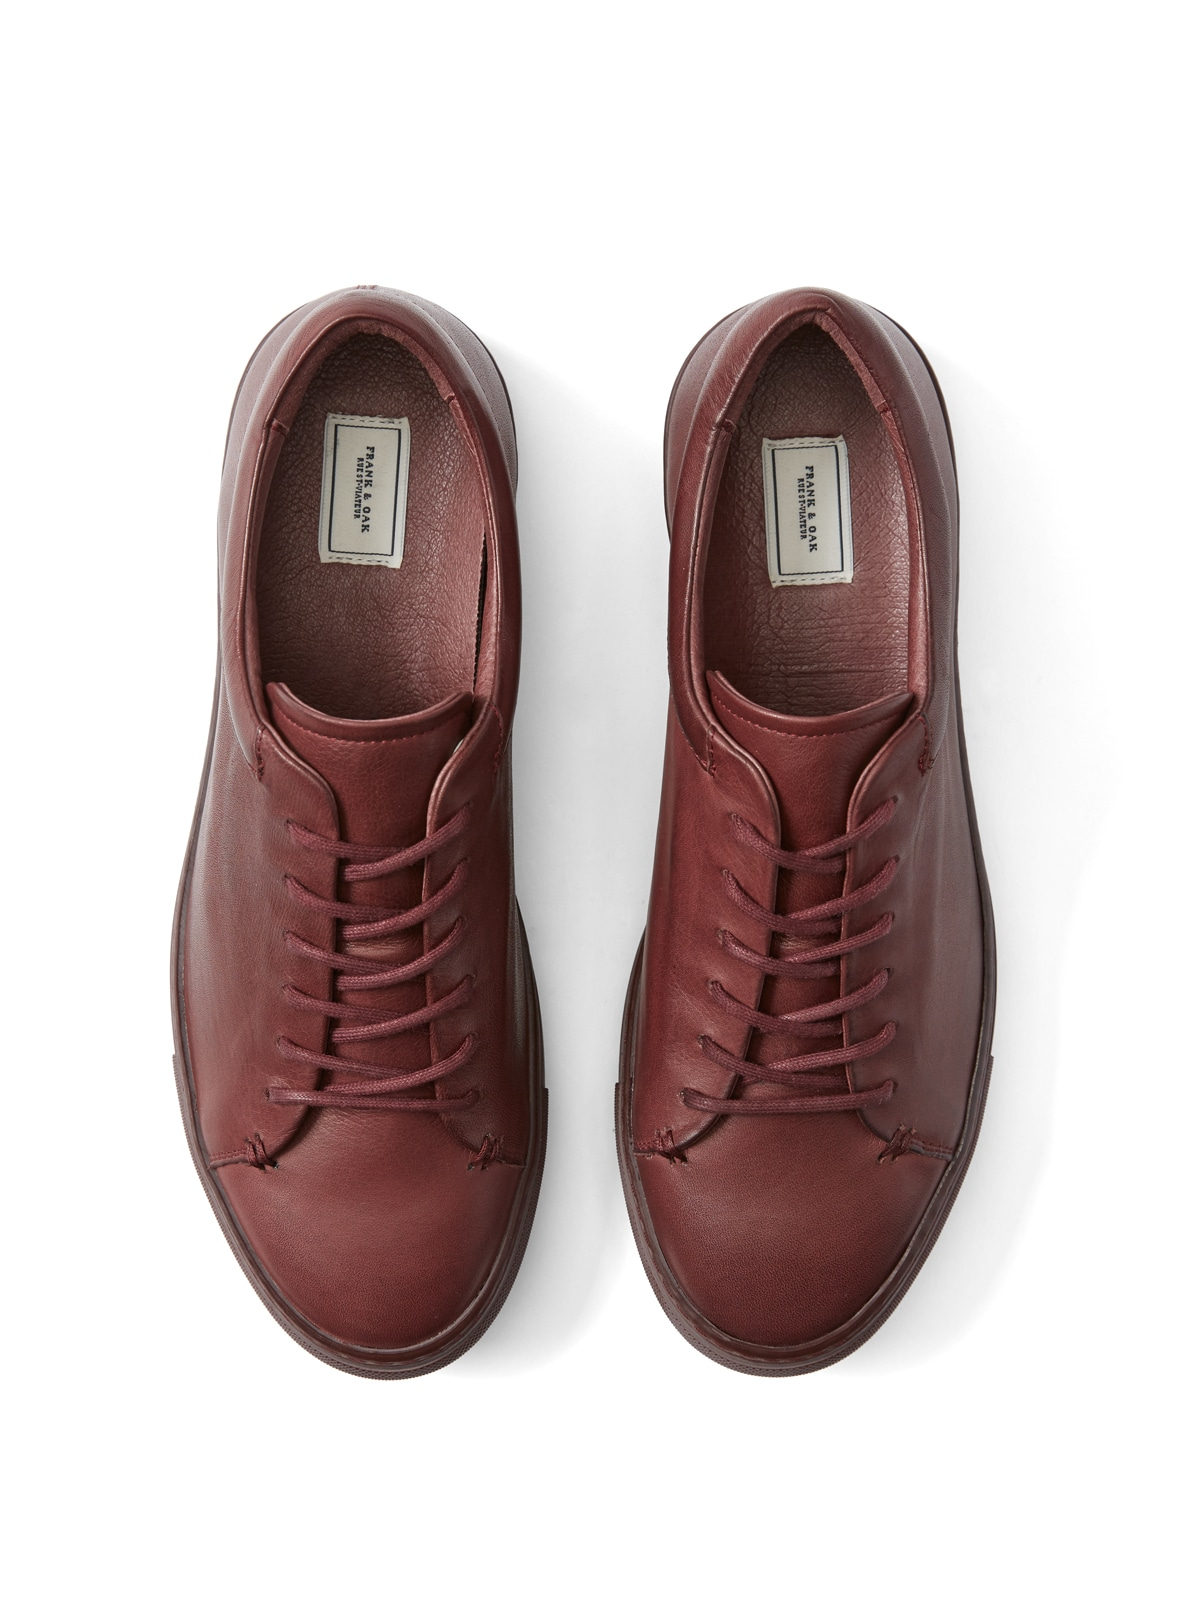 Lyst Frank Oak Park Leather Low top Sneakers In Burgundy